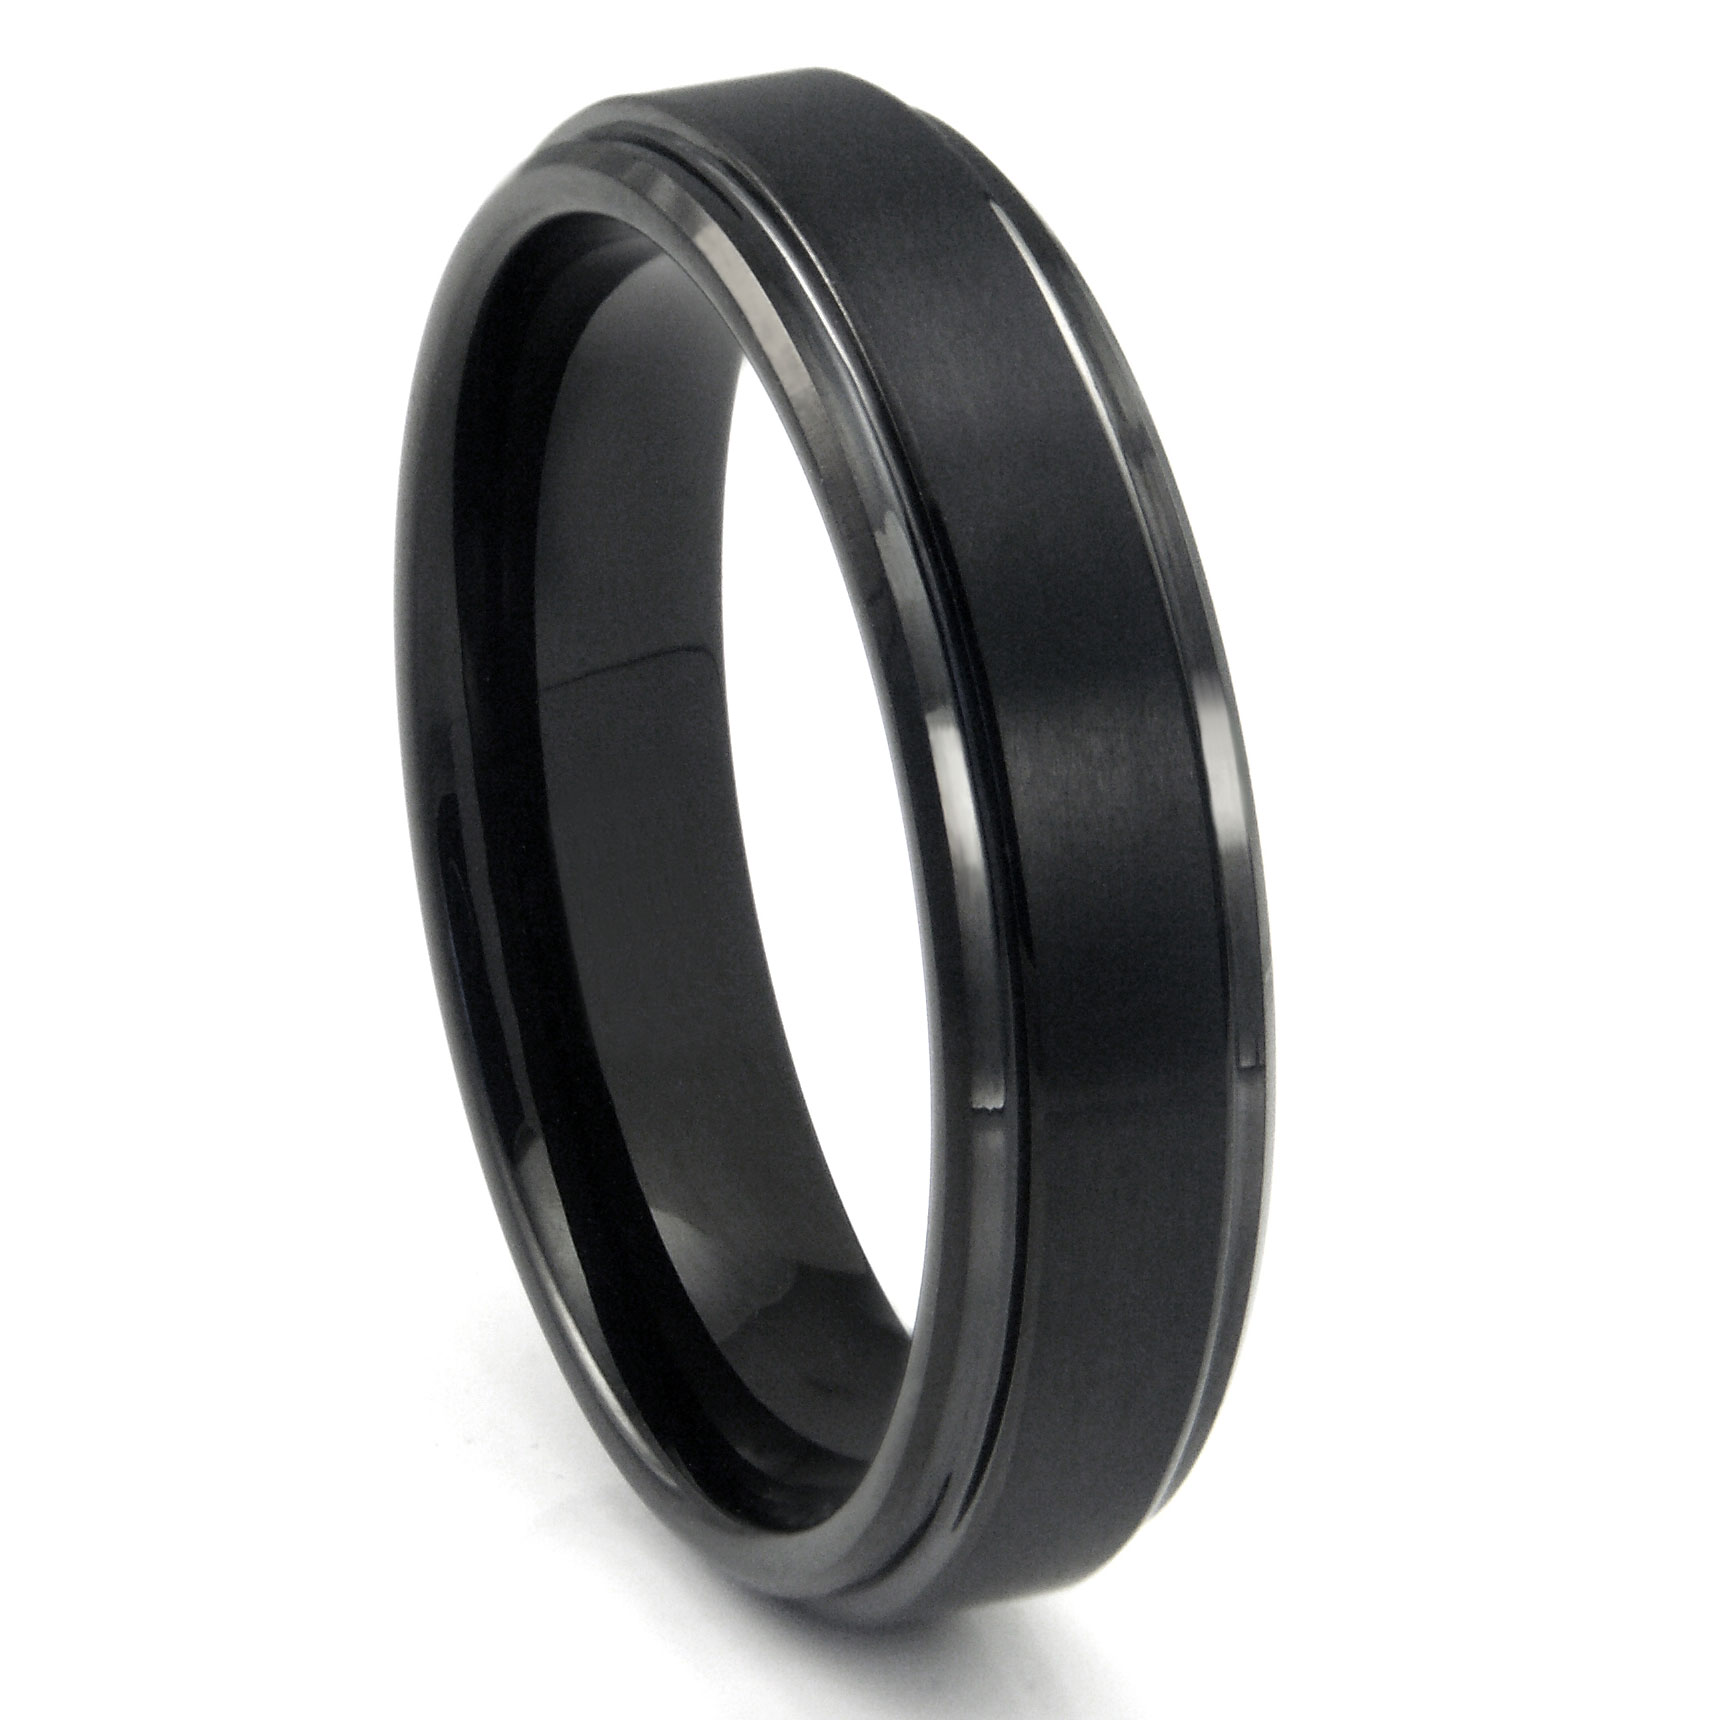 rings store band titanium with stainless men steel new product size skull ring jewelry fasion black spinner online